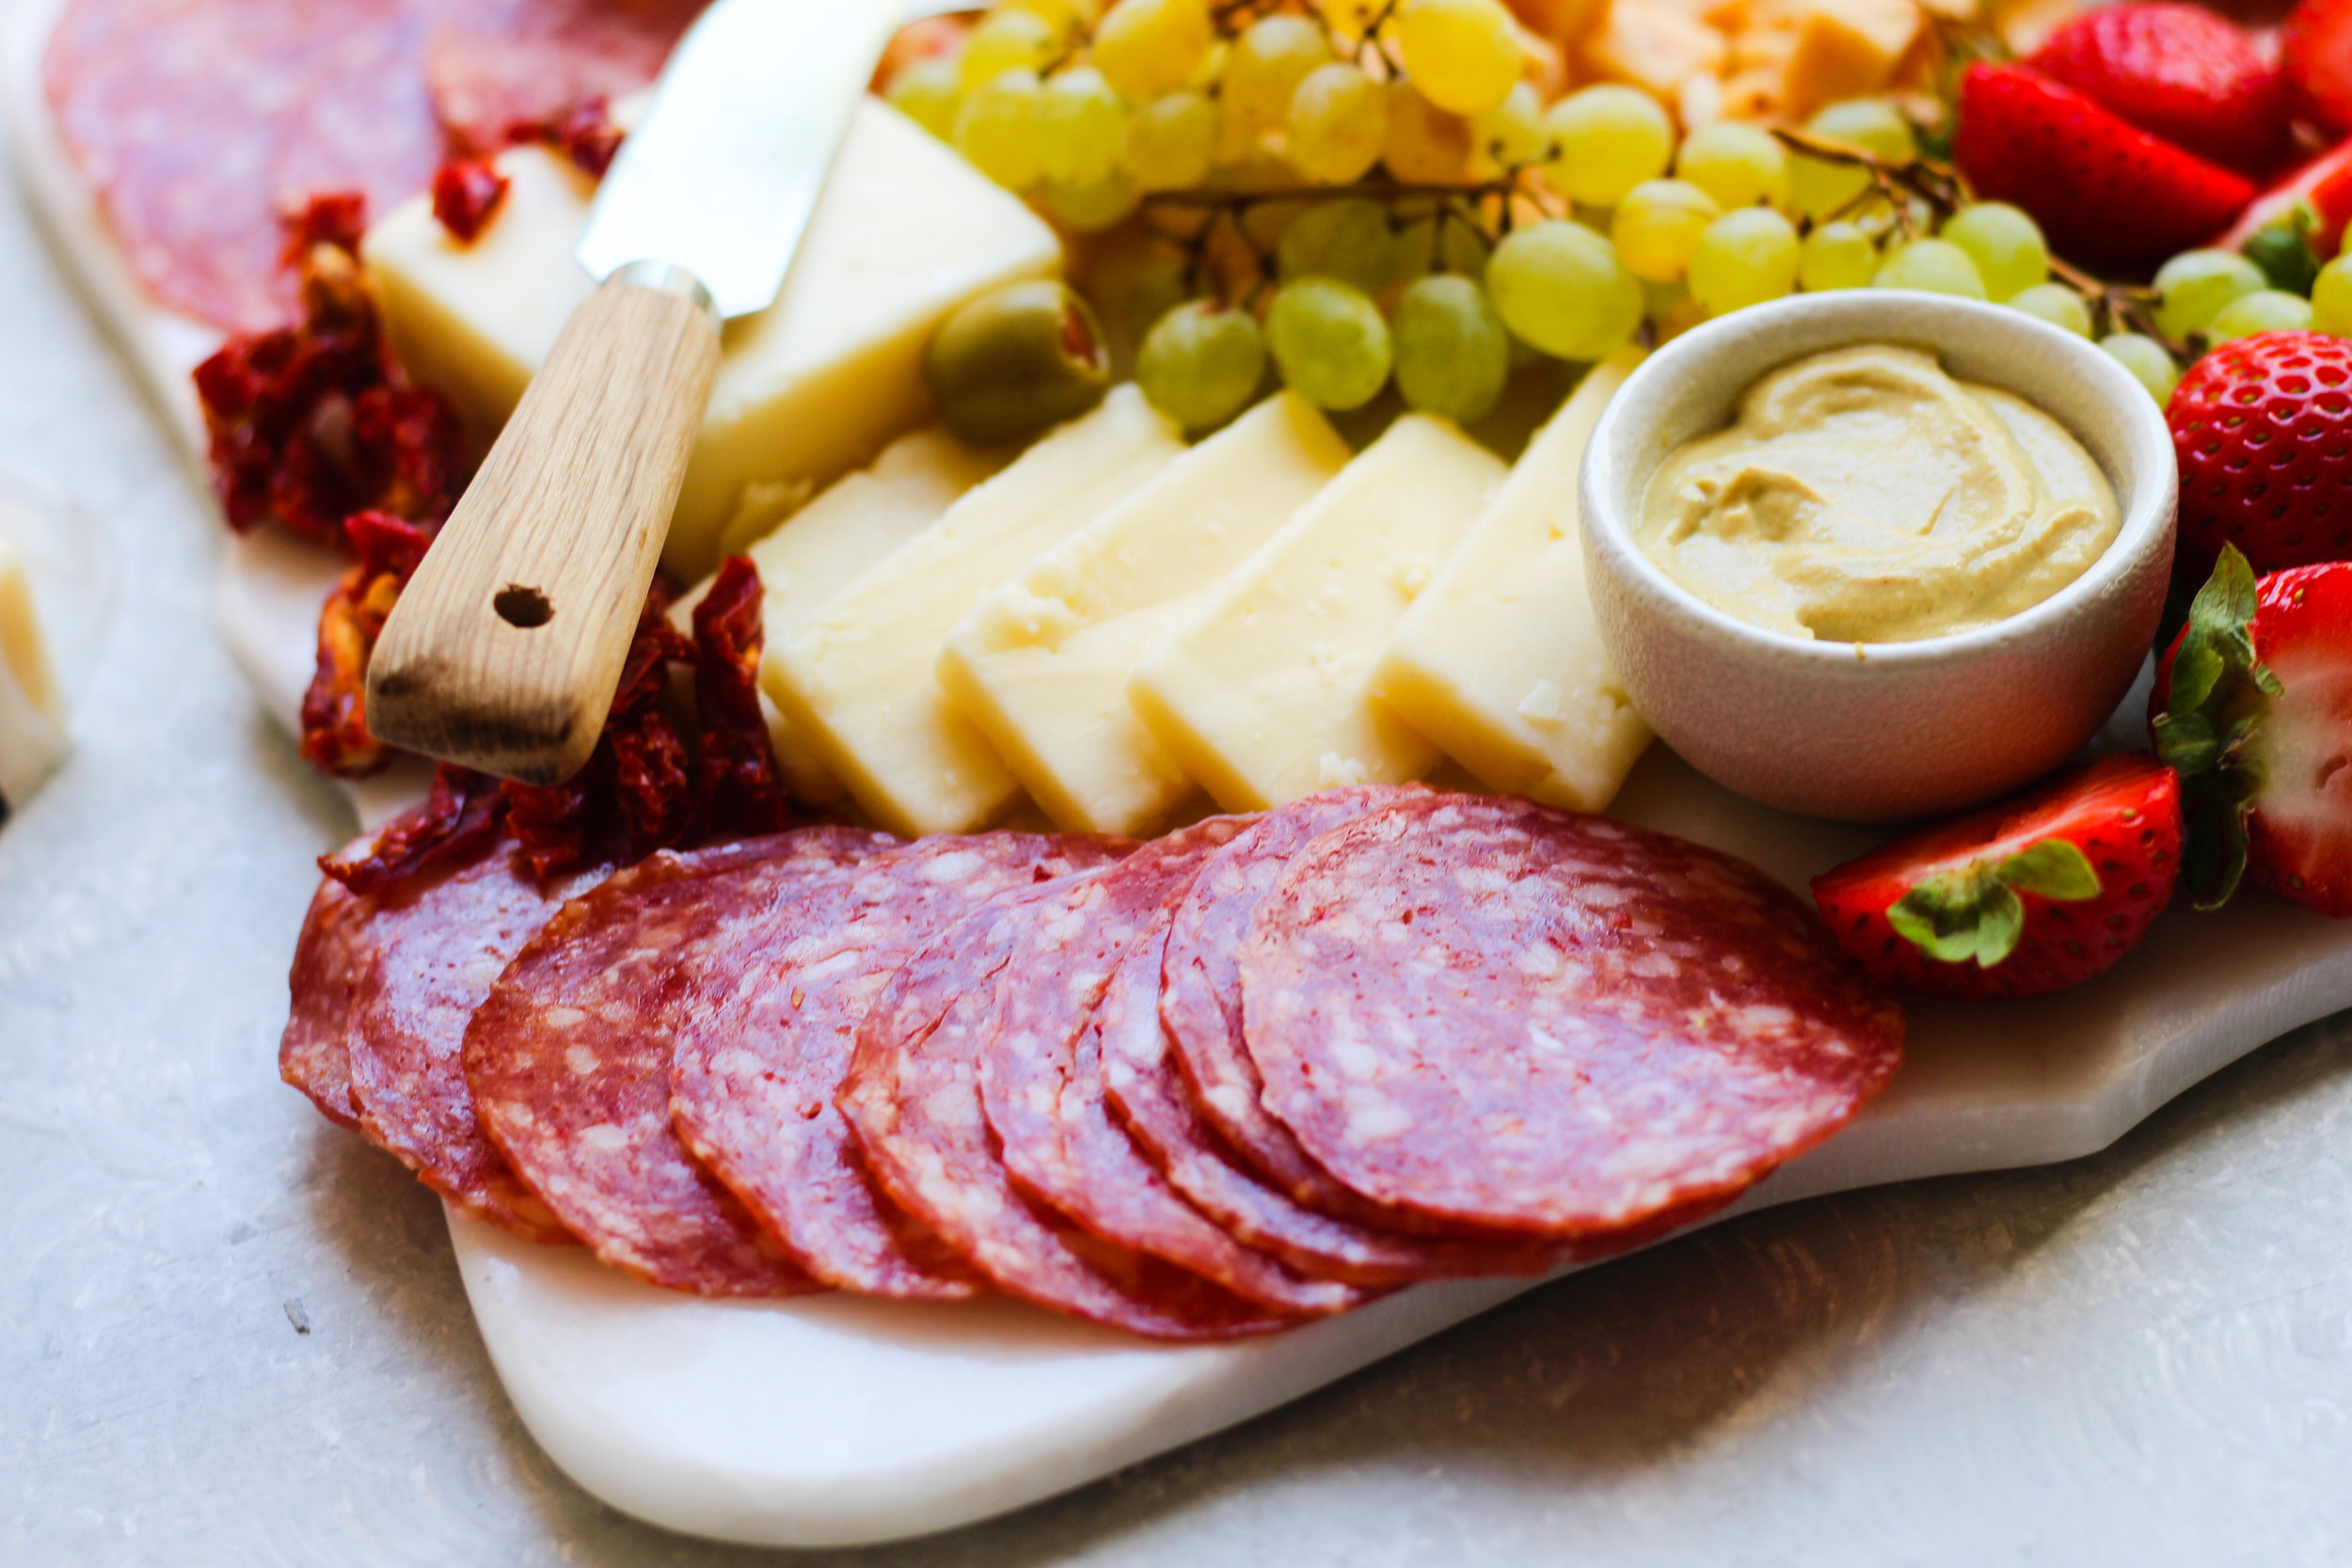 Loaded Cheese and Salami Board